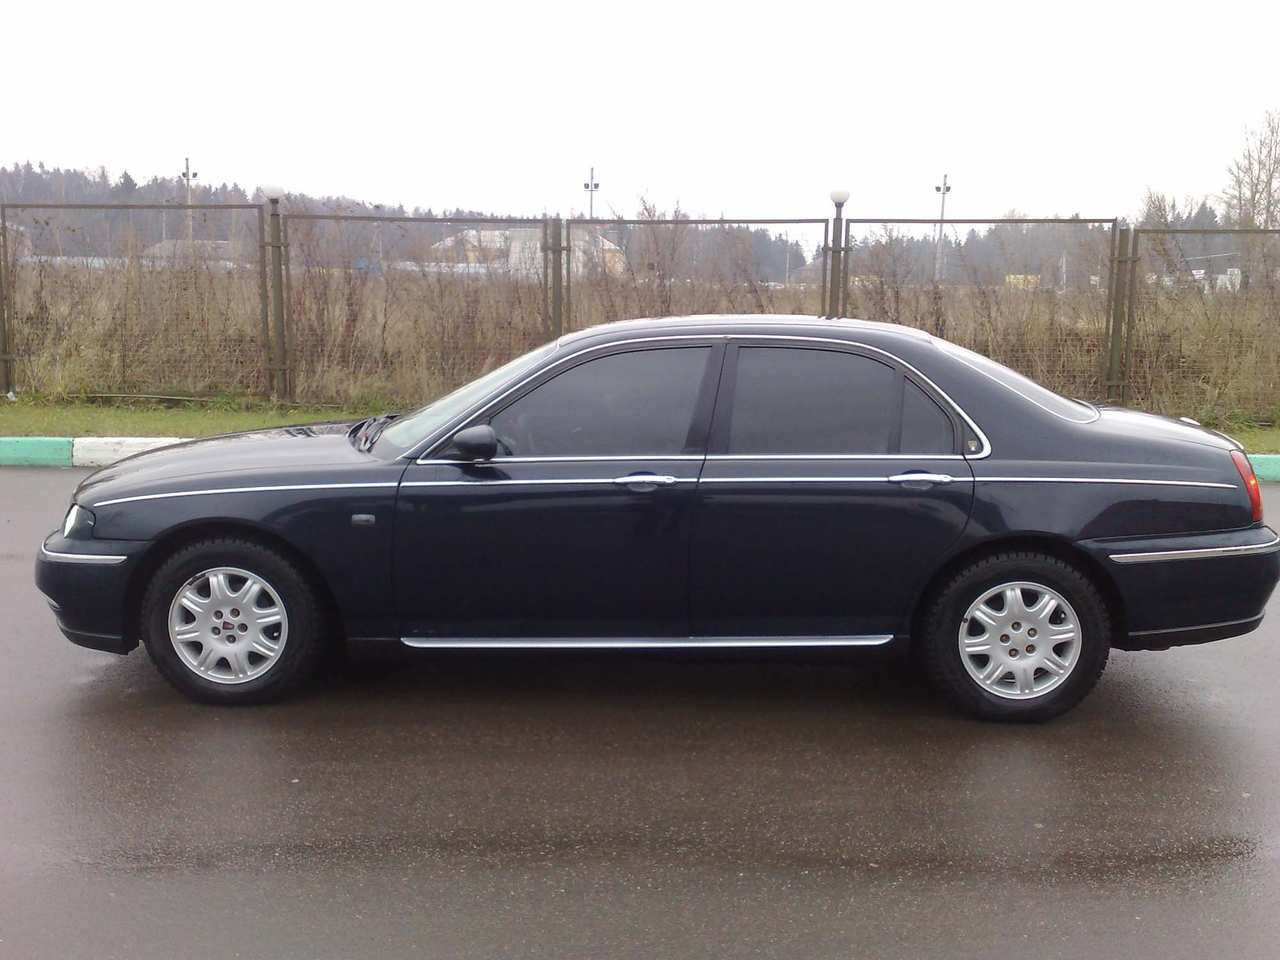 1999 rover 75 images 1796cc gasoline ff automatic for sale. Black Bedroom Furniture Sets. Home Design Ideas